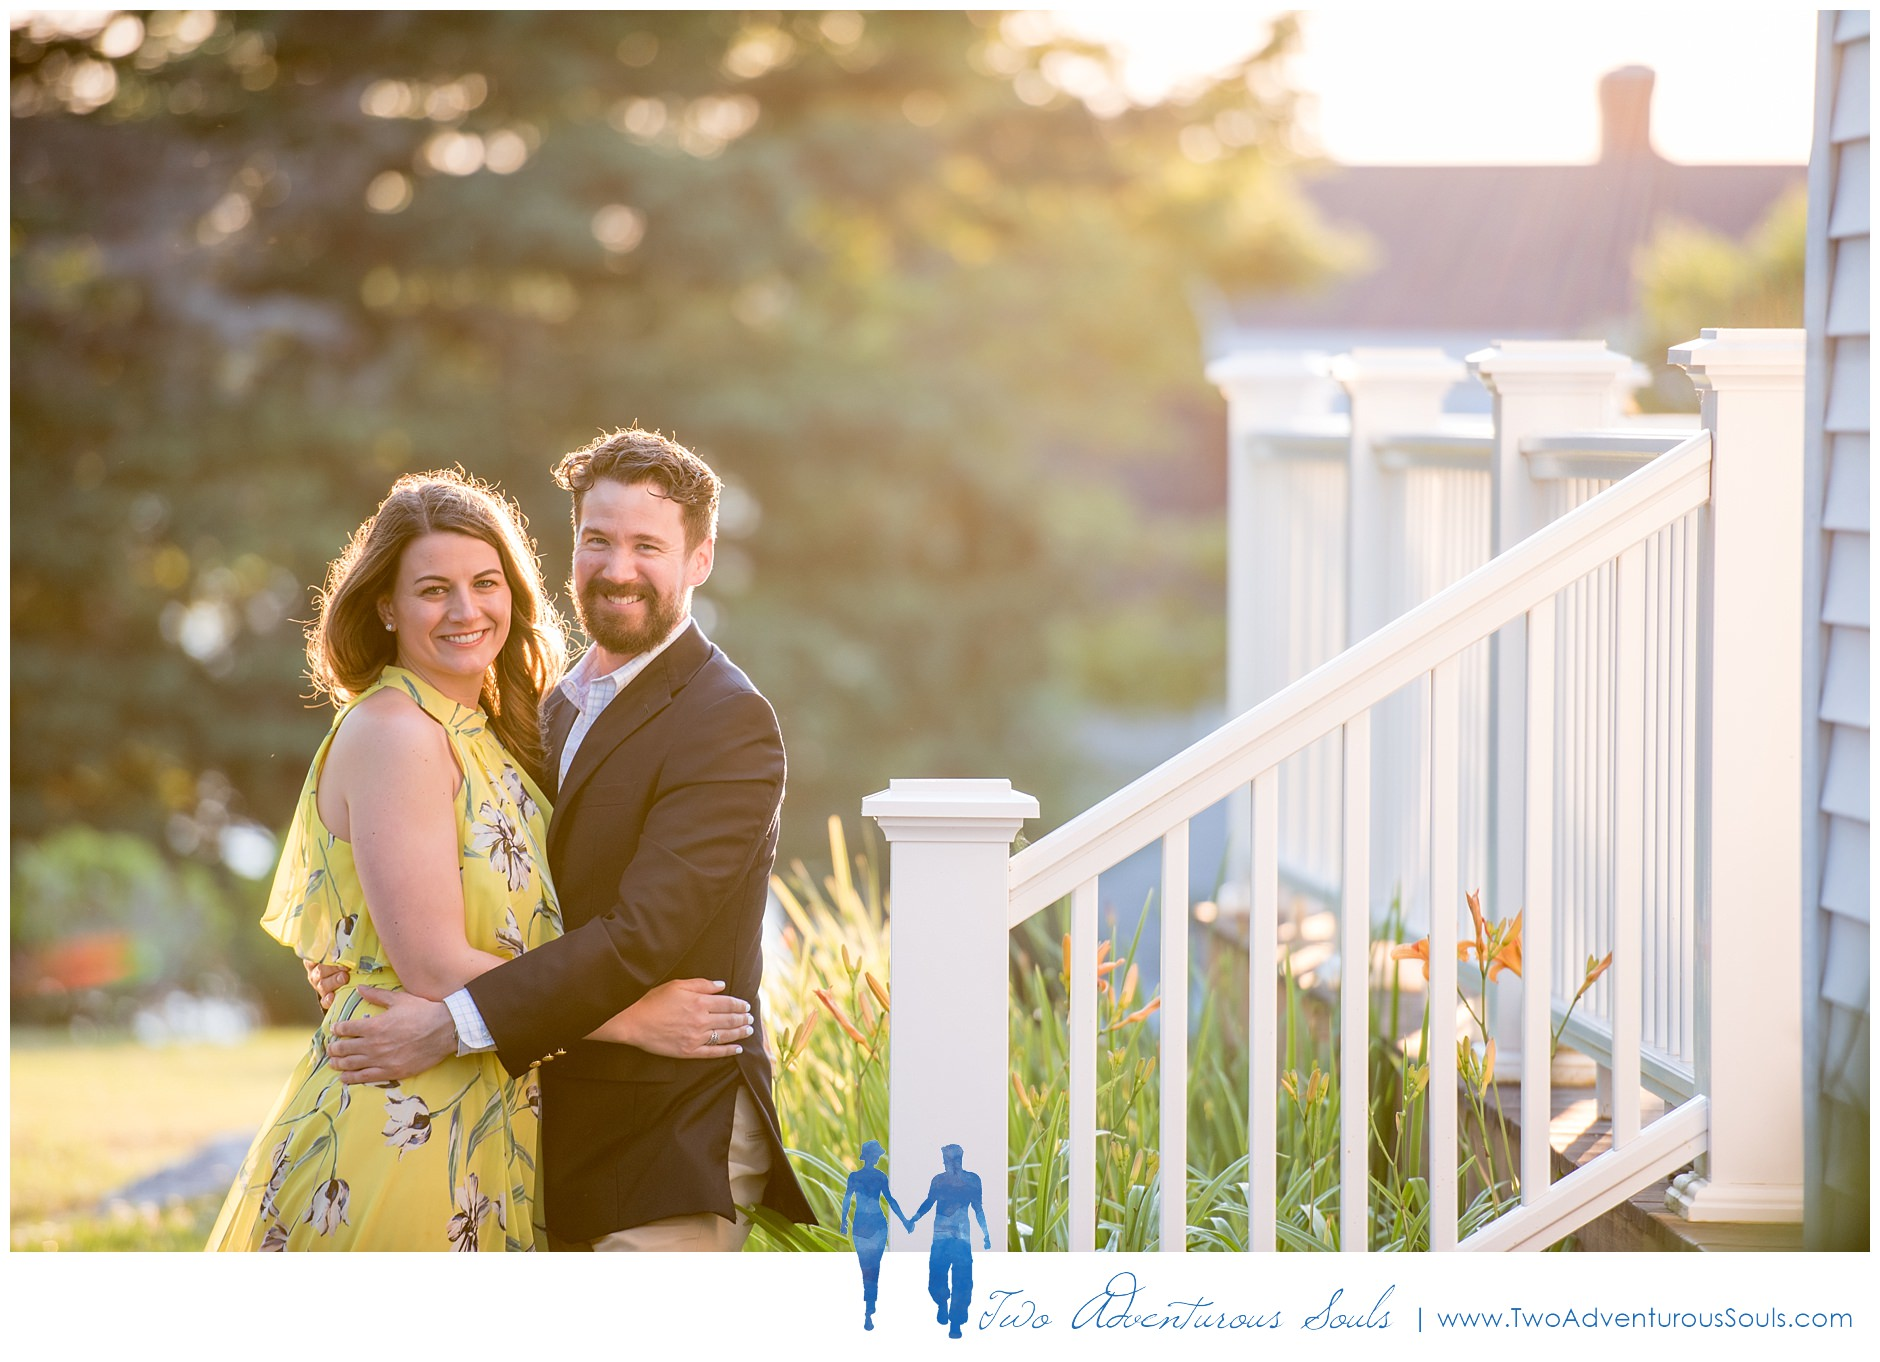 070818 - Leanne & Tyler - engaged-29_Boothbay Harbor Wedding Photographers, Boothbay Engagement Session.jpg